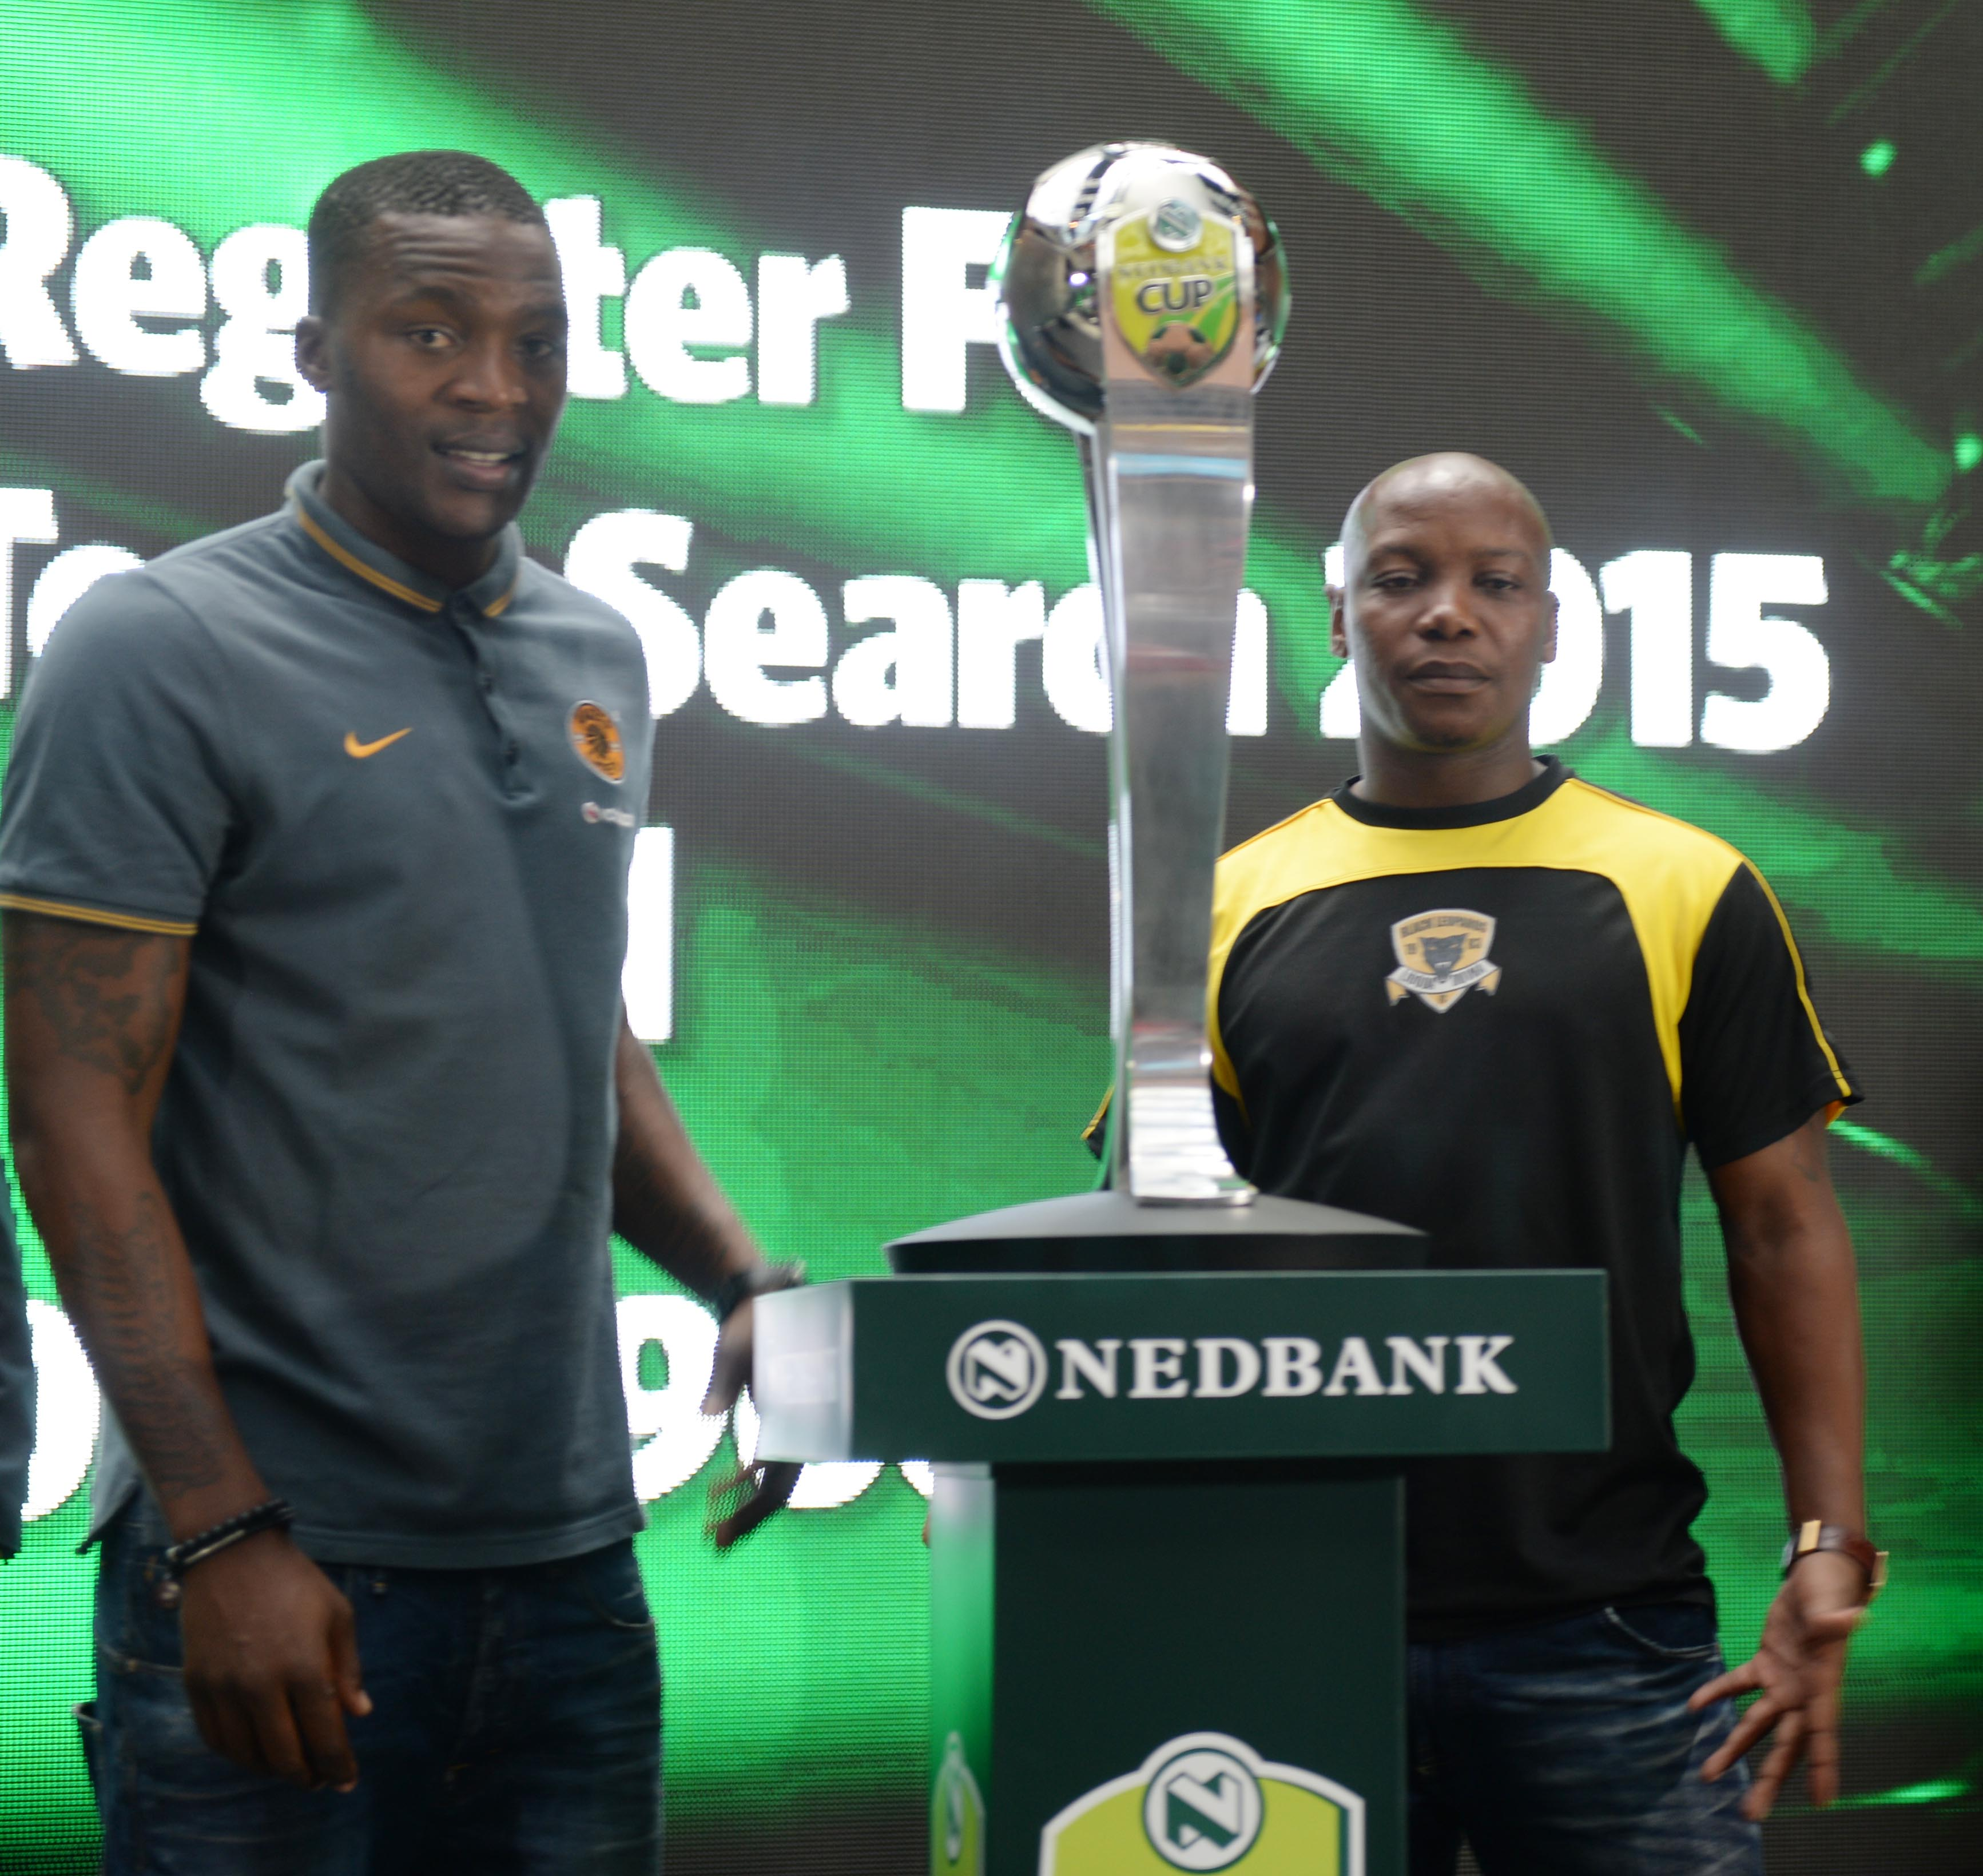 Morgan Gould of Kaizer Chiefs and Mbongezi Bobe during the 2015 Nedbank Cup Last 16 draw at Carlton Centre on February 26, 2015 in Johannesburg, South Africa. (Photo by Lefty Shivambu/Gallo Images)